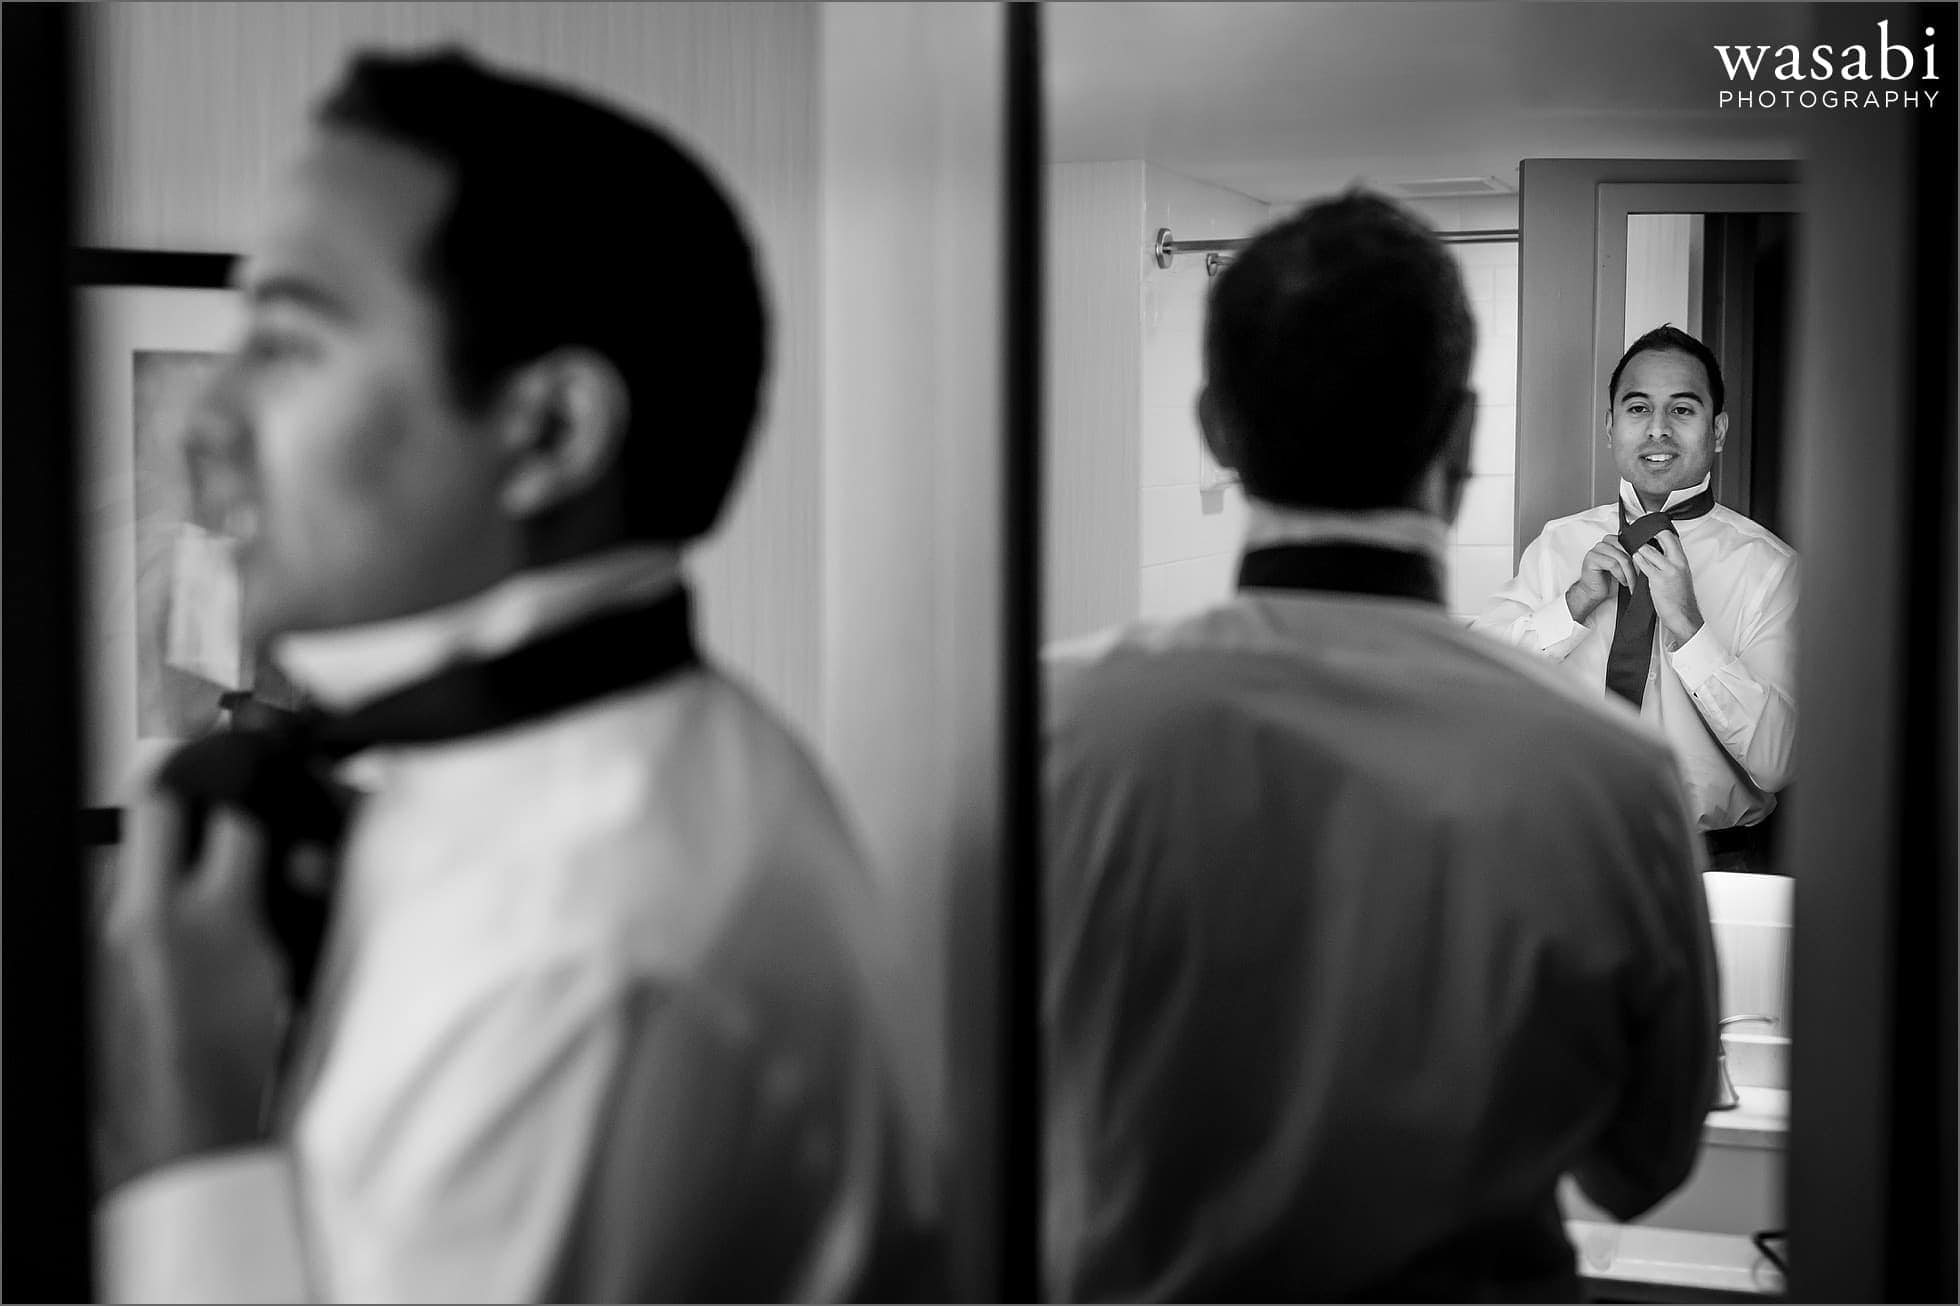 groom puts on tie in mirror while getting ready for his wedding at Sheraton Grand Hotel in Chicago